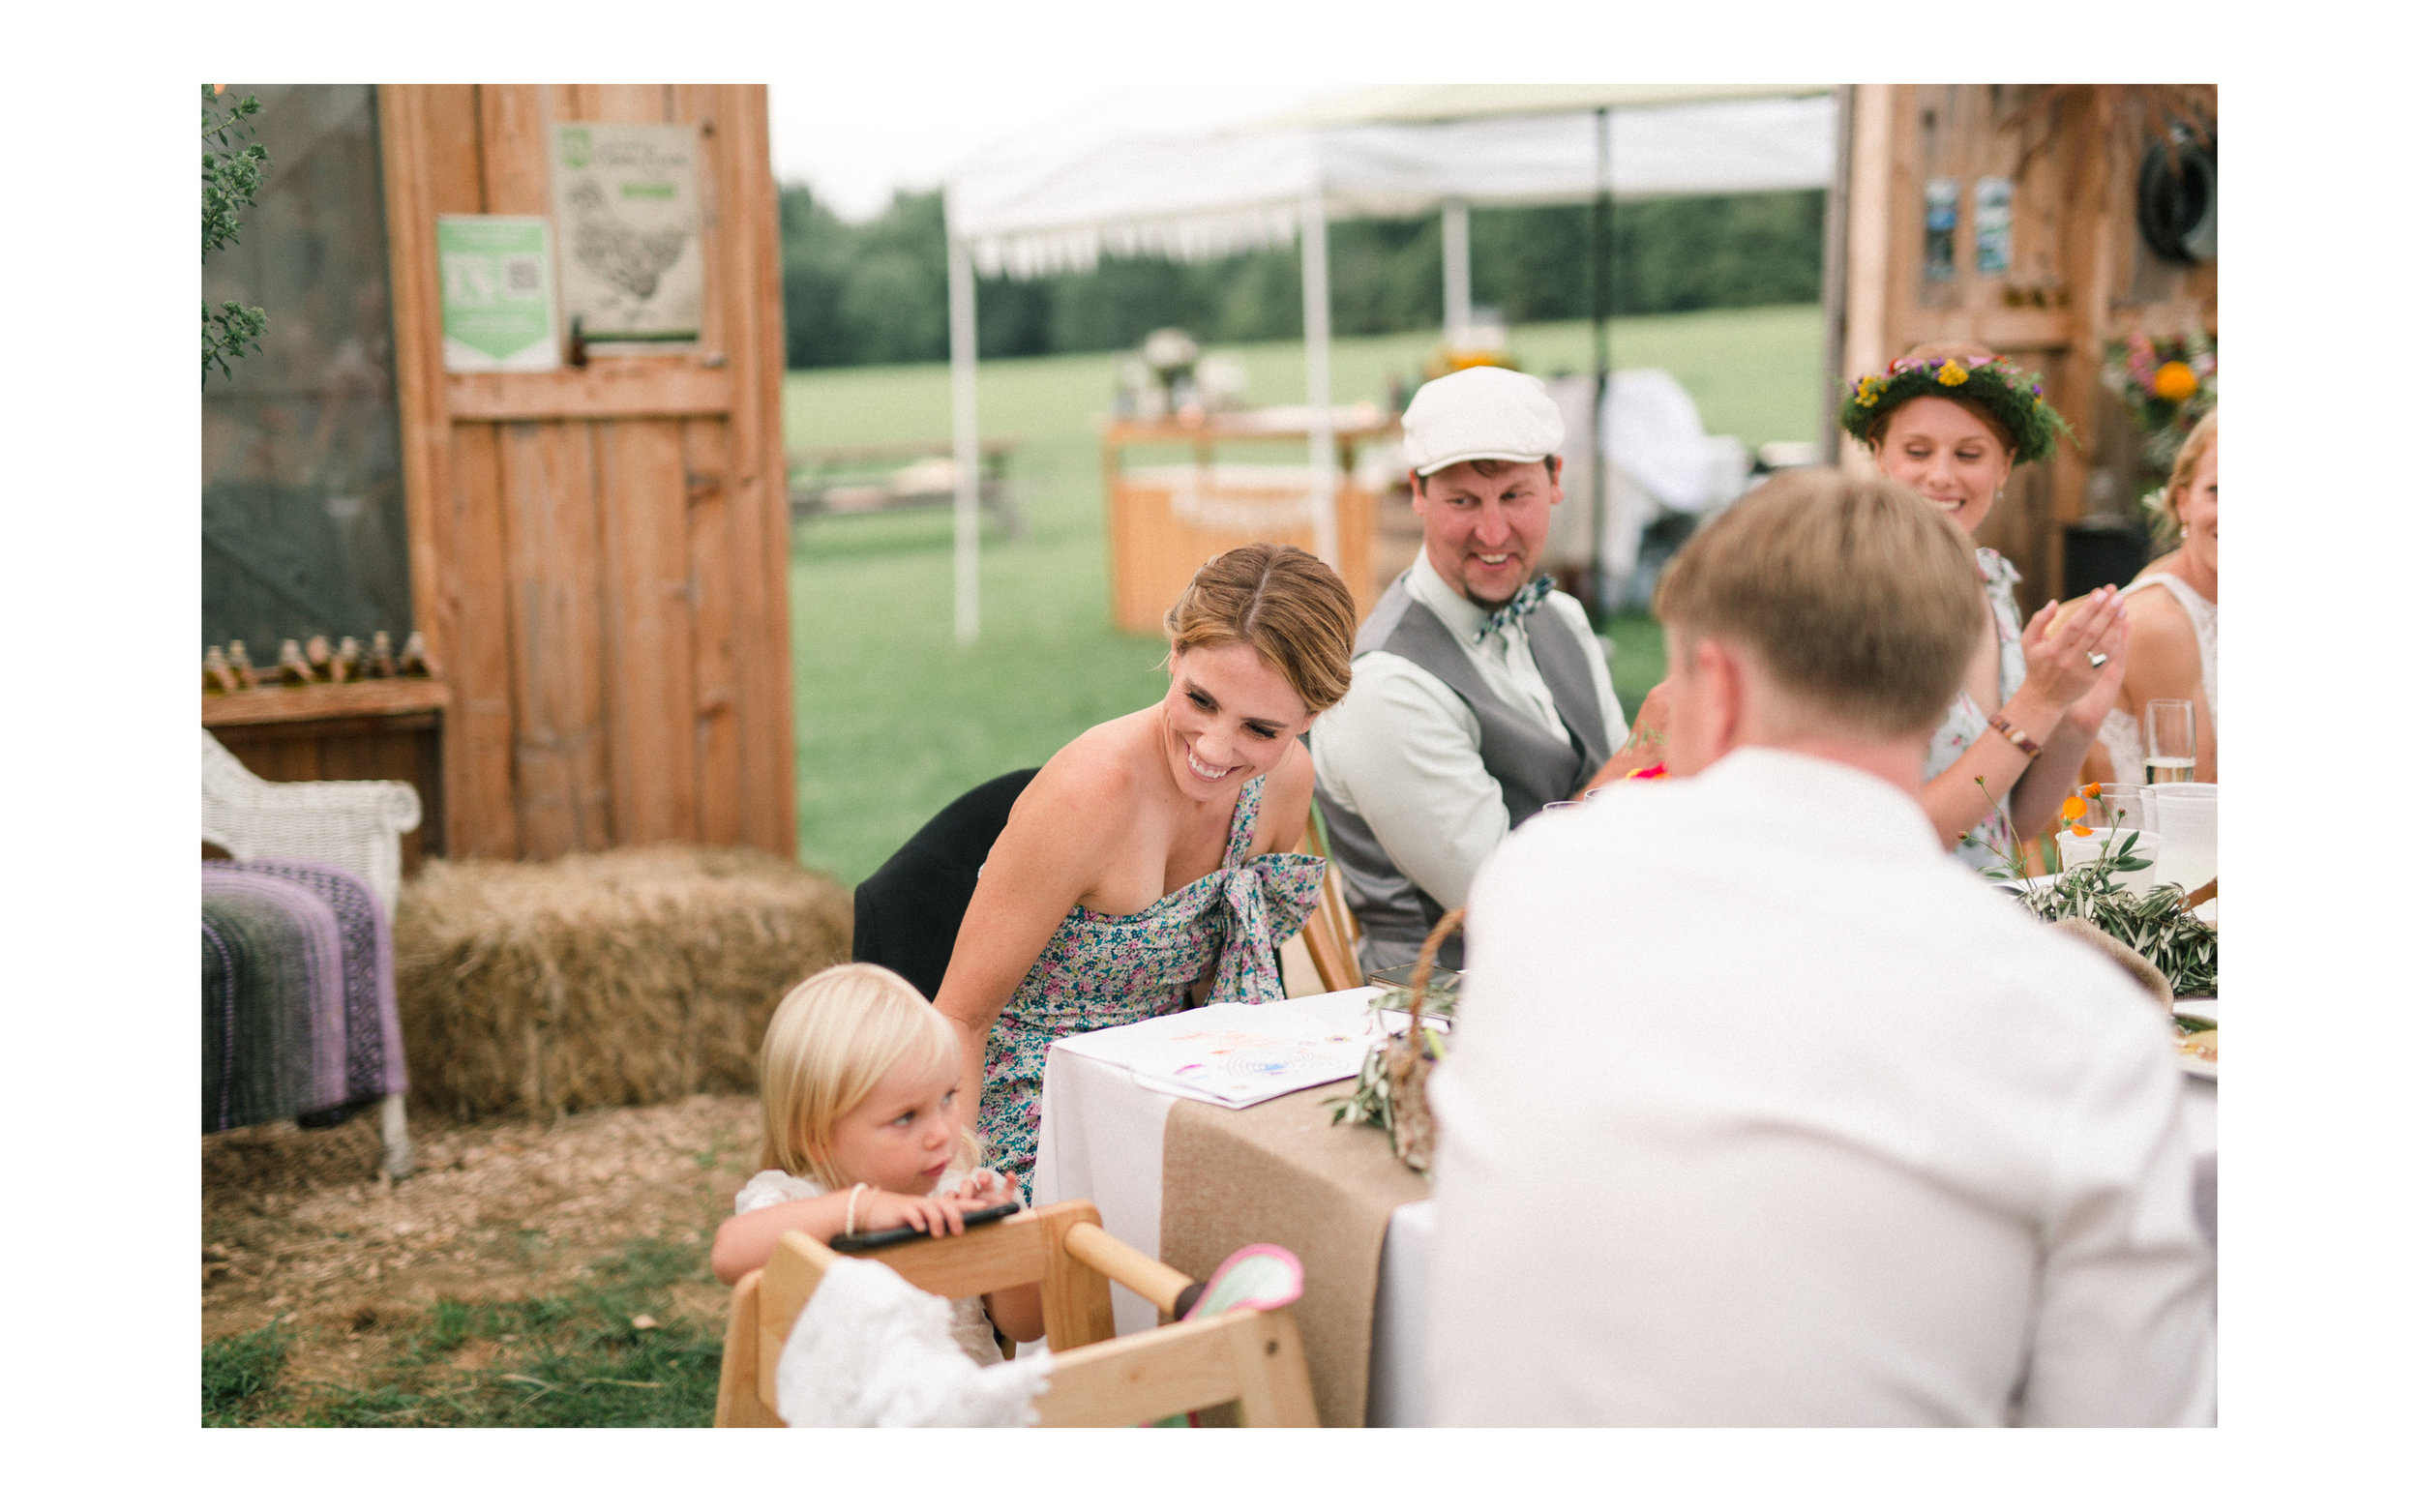 Stowe VT Farm Wedding Fine Art Wedding Photographer_Meg Haley Photographs_055.jpg